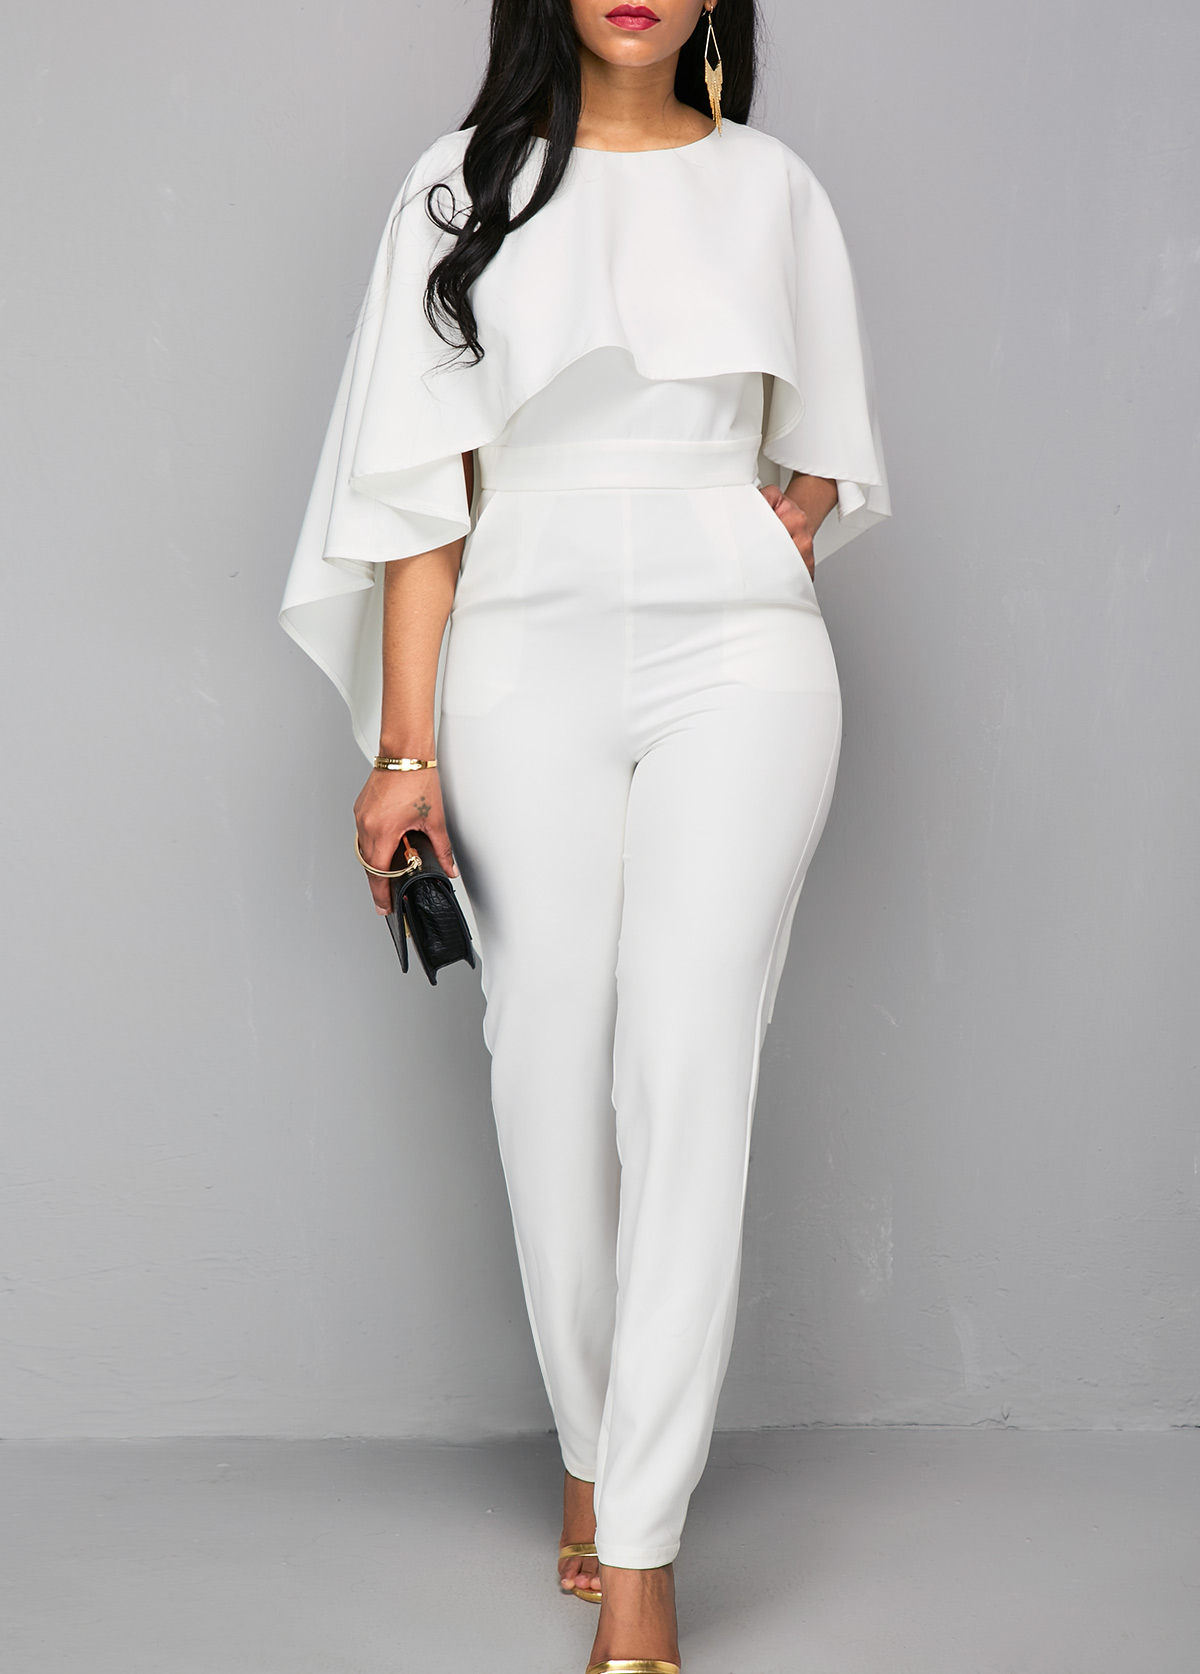 White Jumpsuits And Rompers For Women - Breeze Clothing